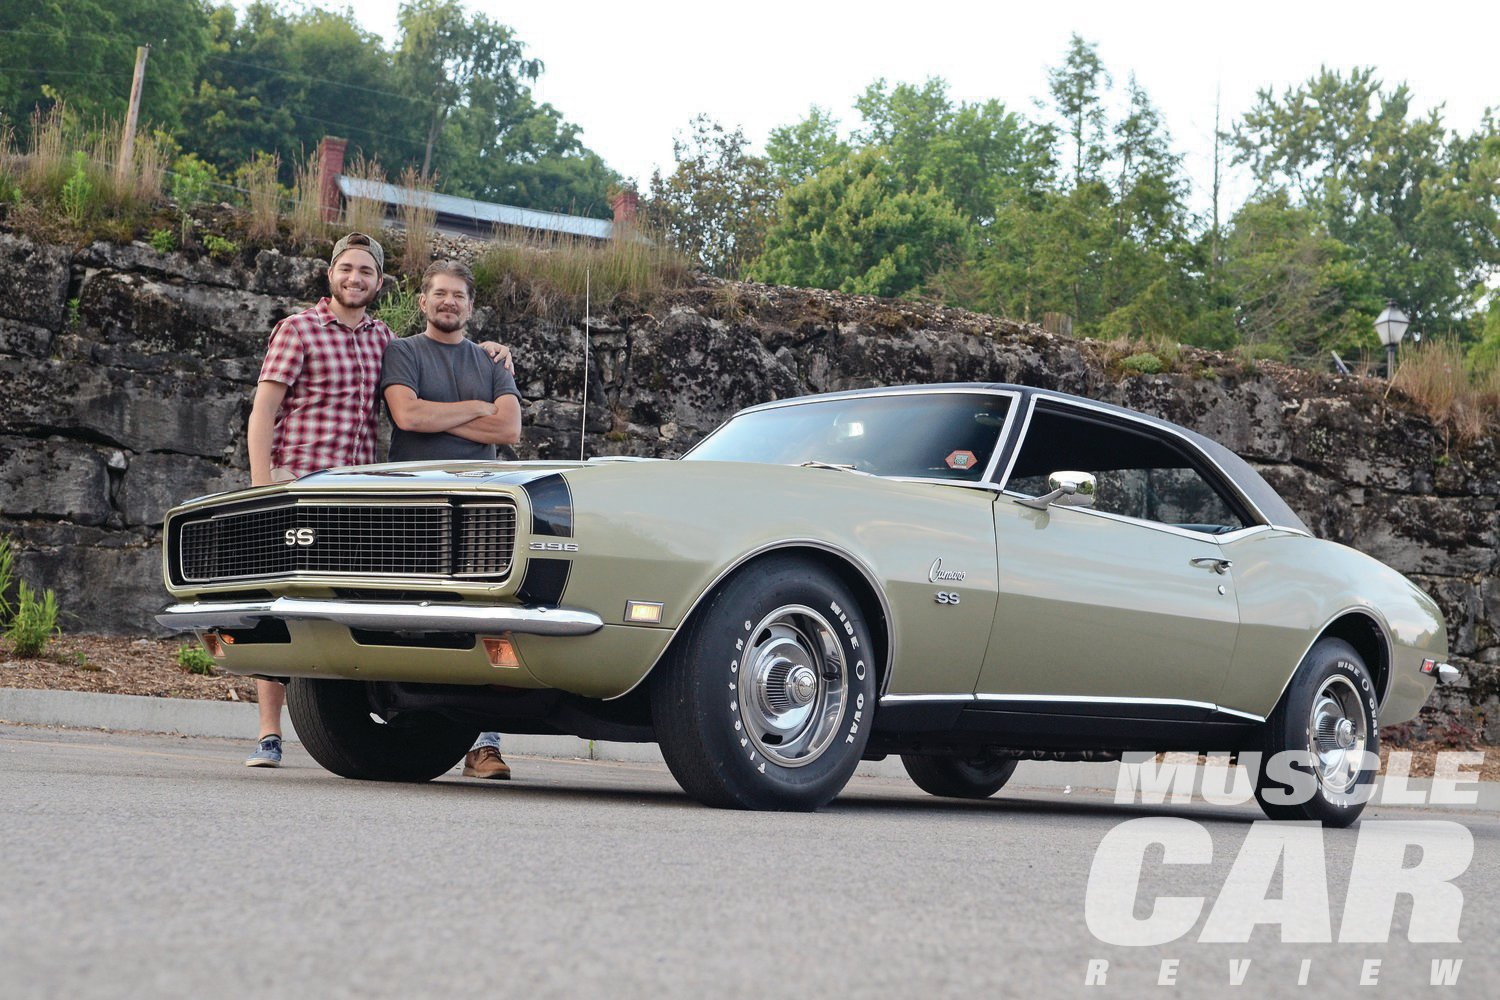 The Mathesons don't get to work on car projects much anymore, but the bond they forged over this Camaro is obvious and long lasting.